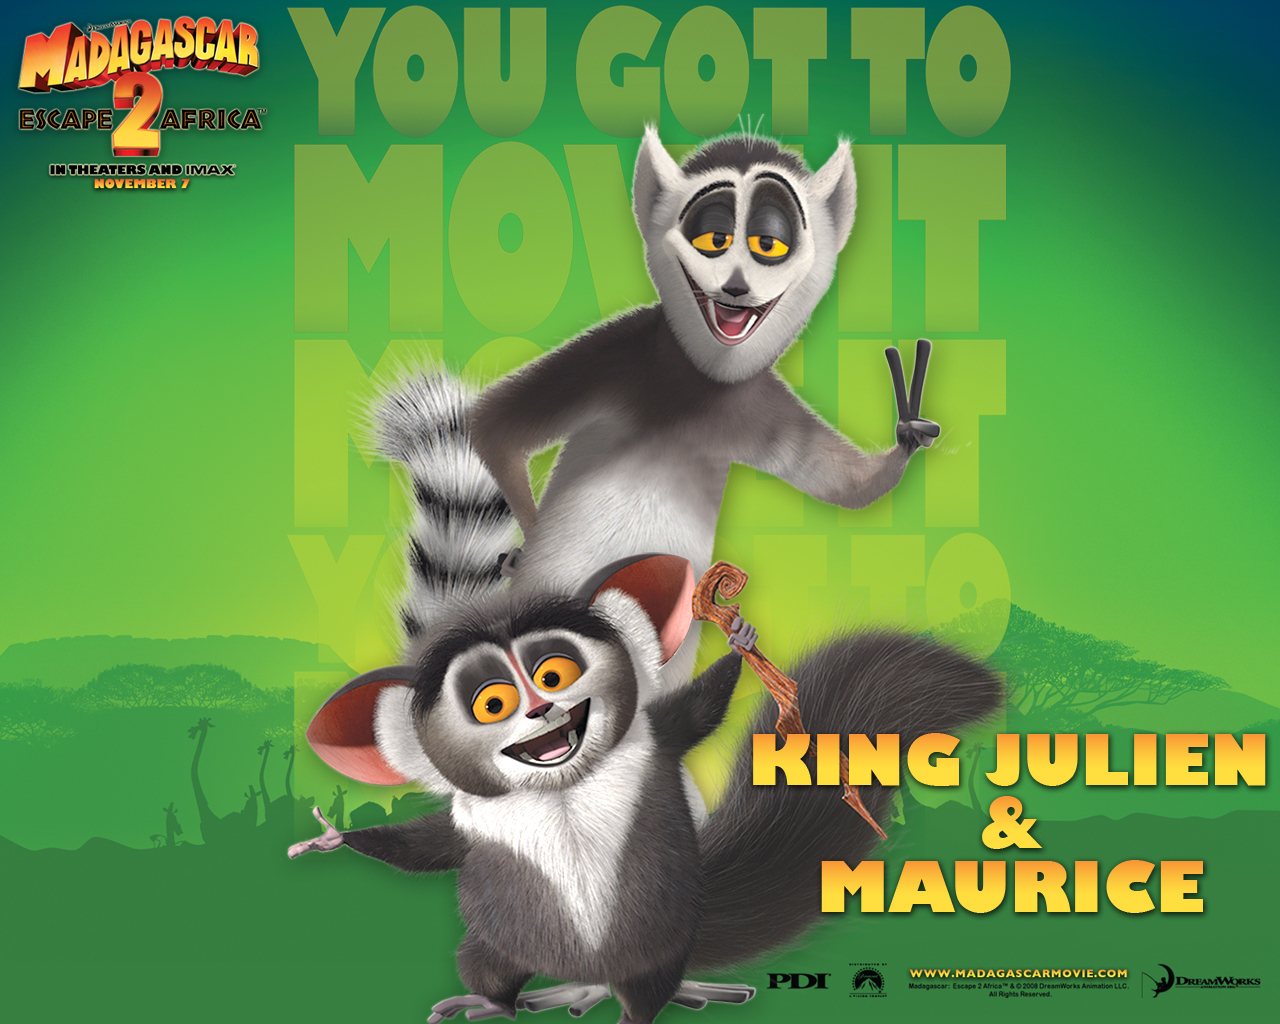 Madagascar King Julien & Maurice